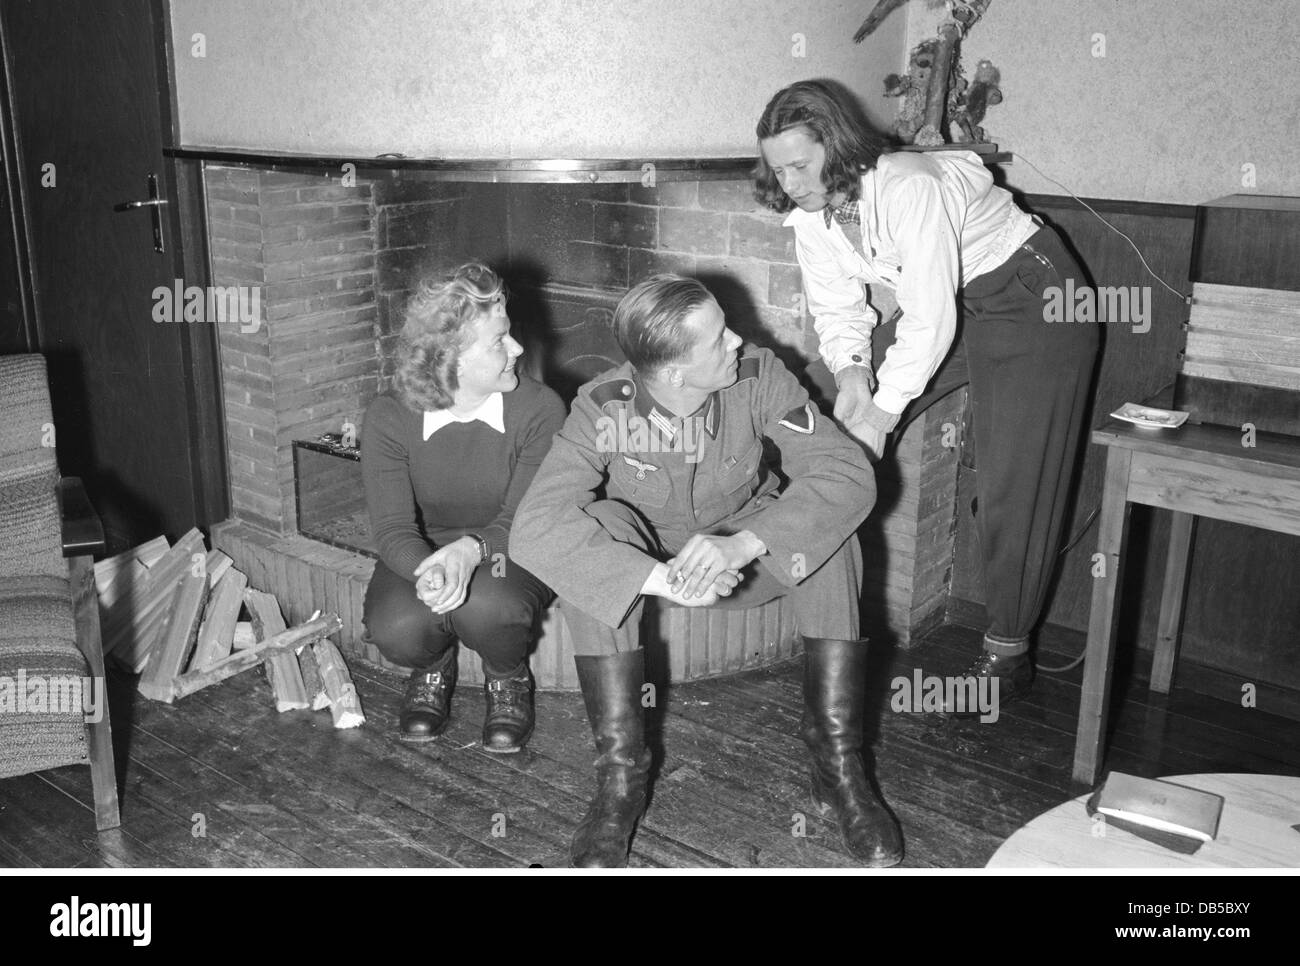 events, Second World War / WWII, Germany, Wehrmacht soldier with two women in front of a fireplace, circa 1941, - Stock Image